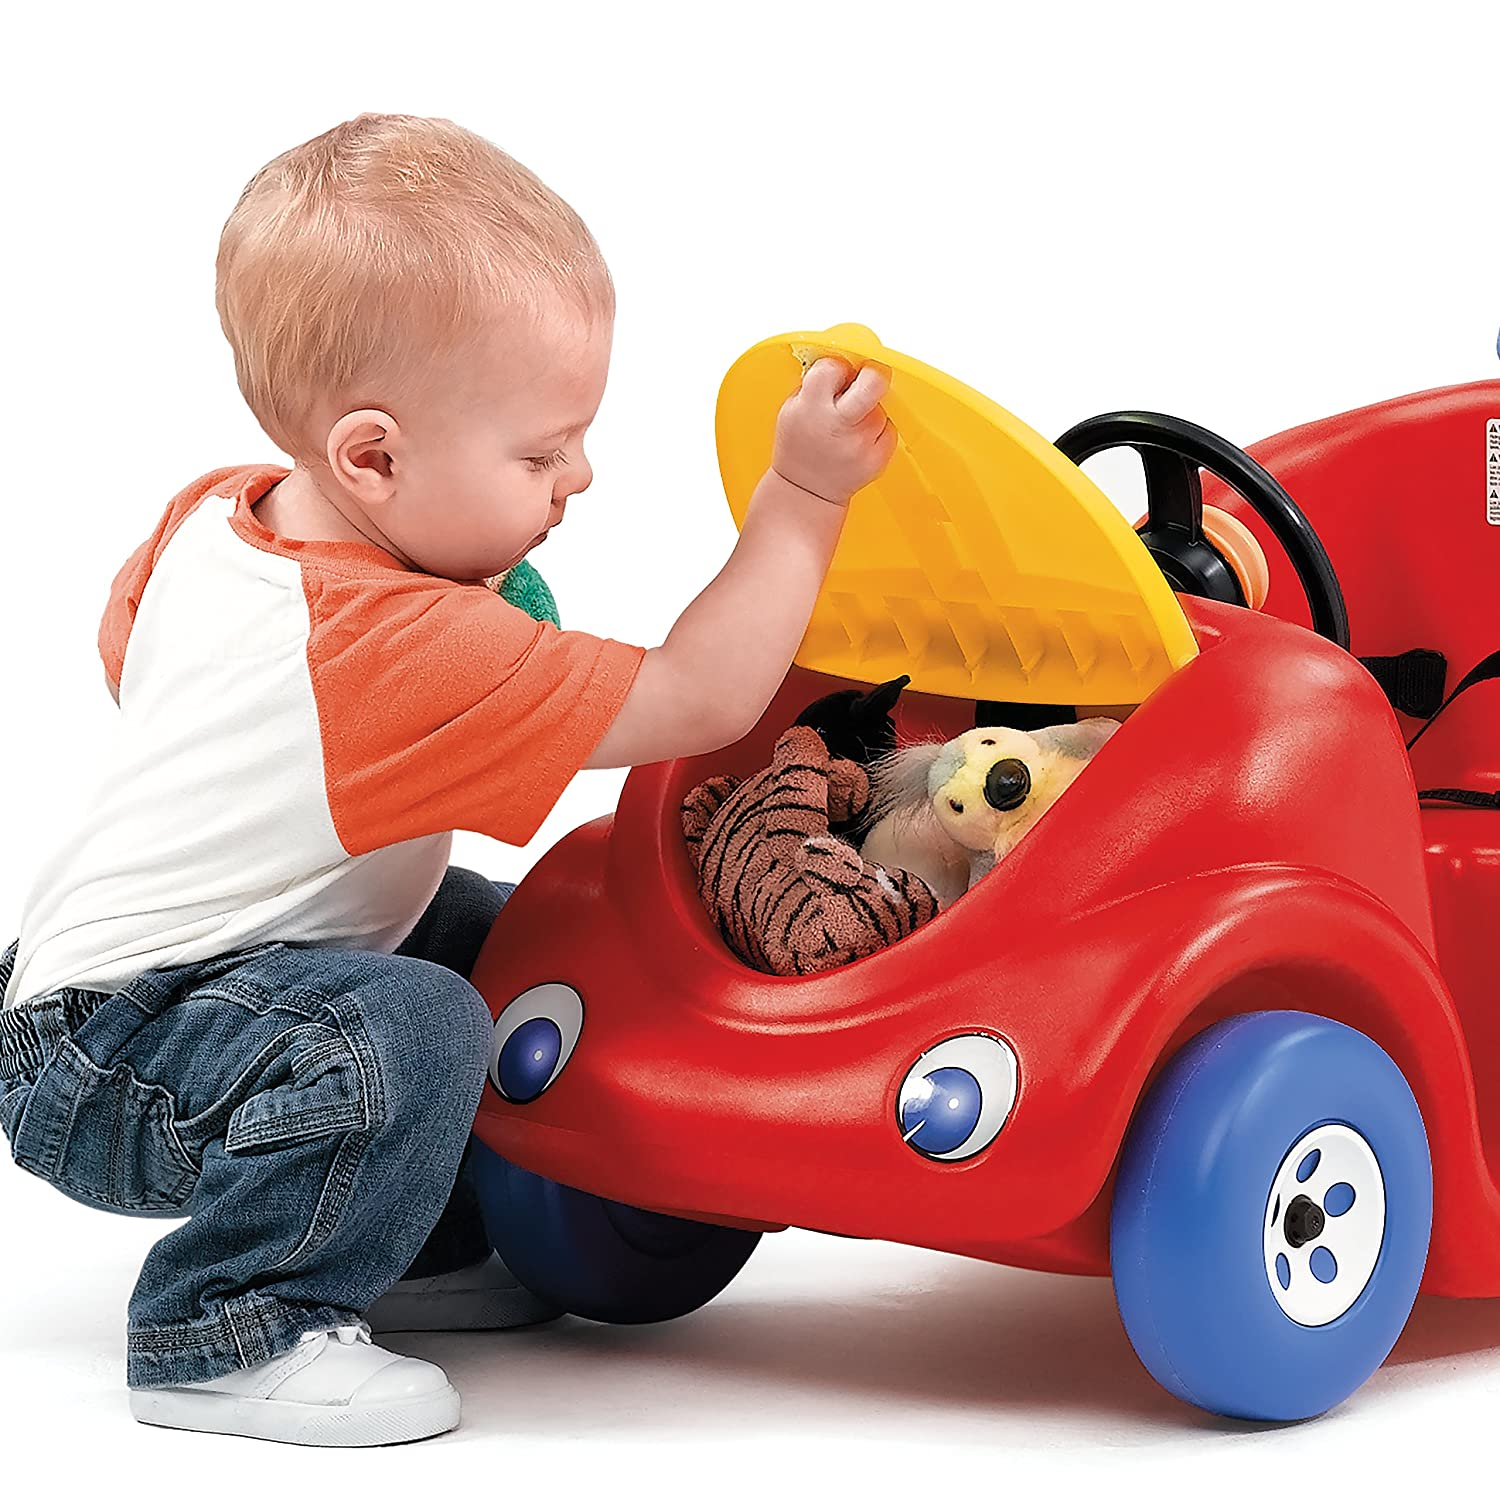 Amazon Step2 Push Around Buggy Ride Red Toys & Games